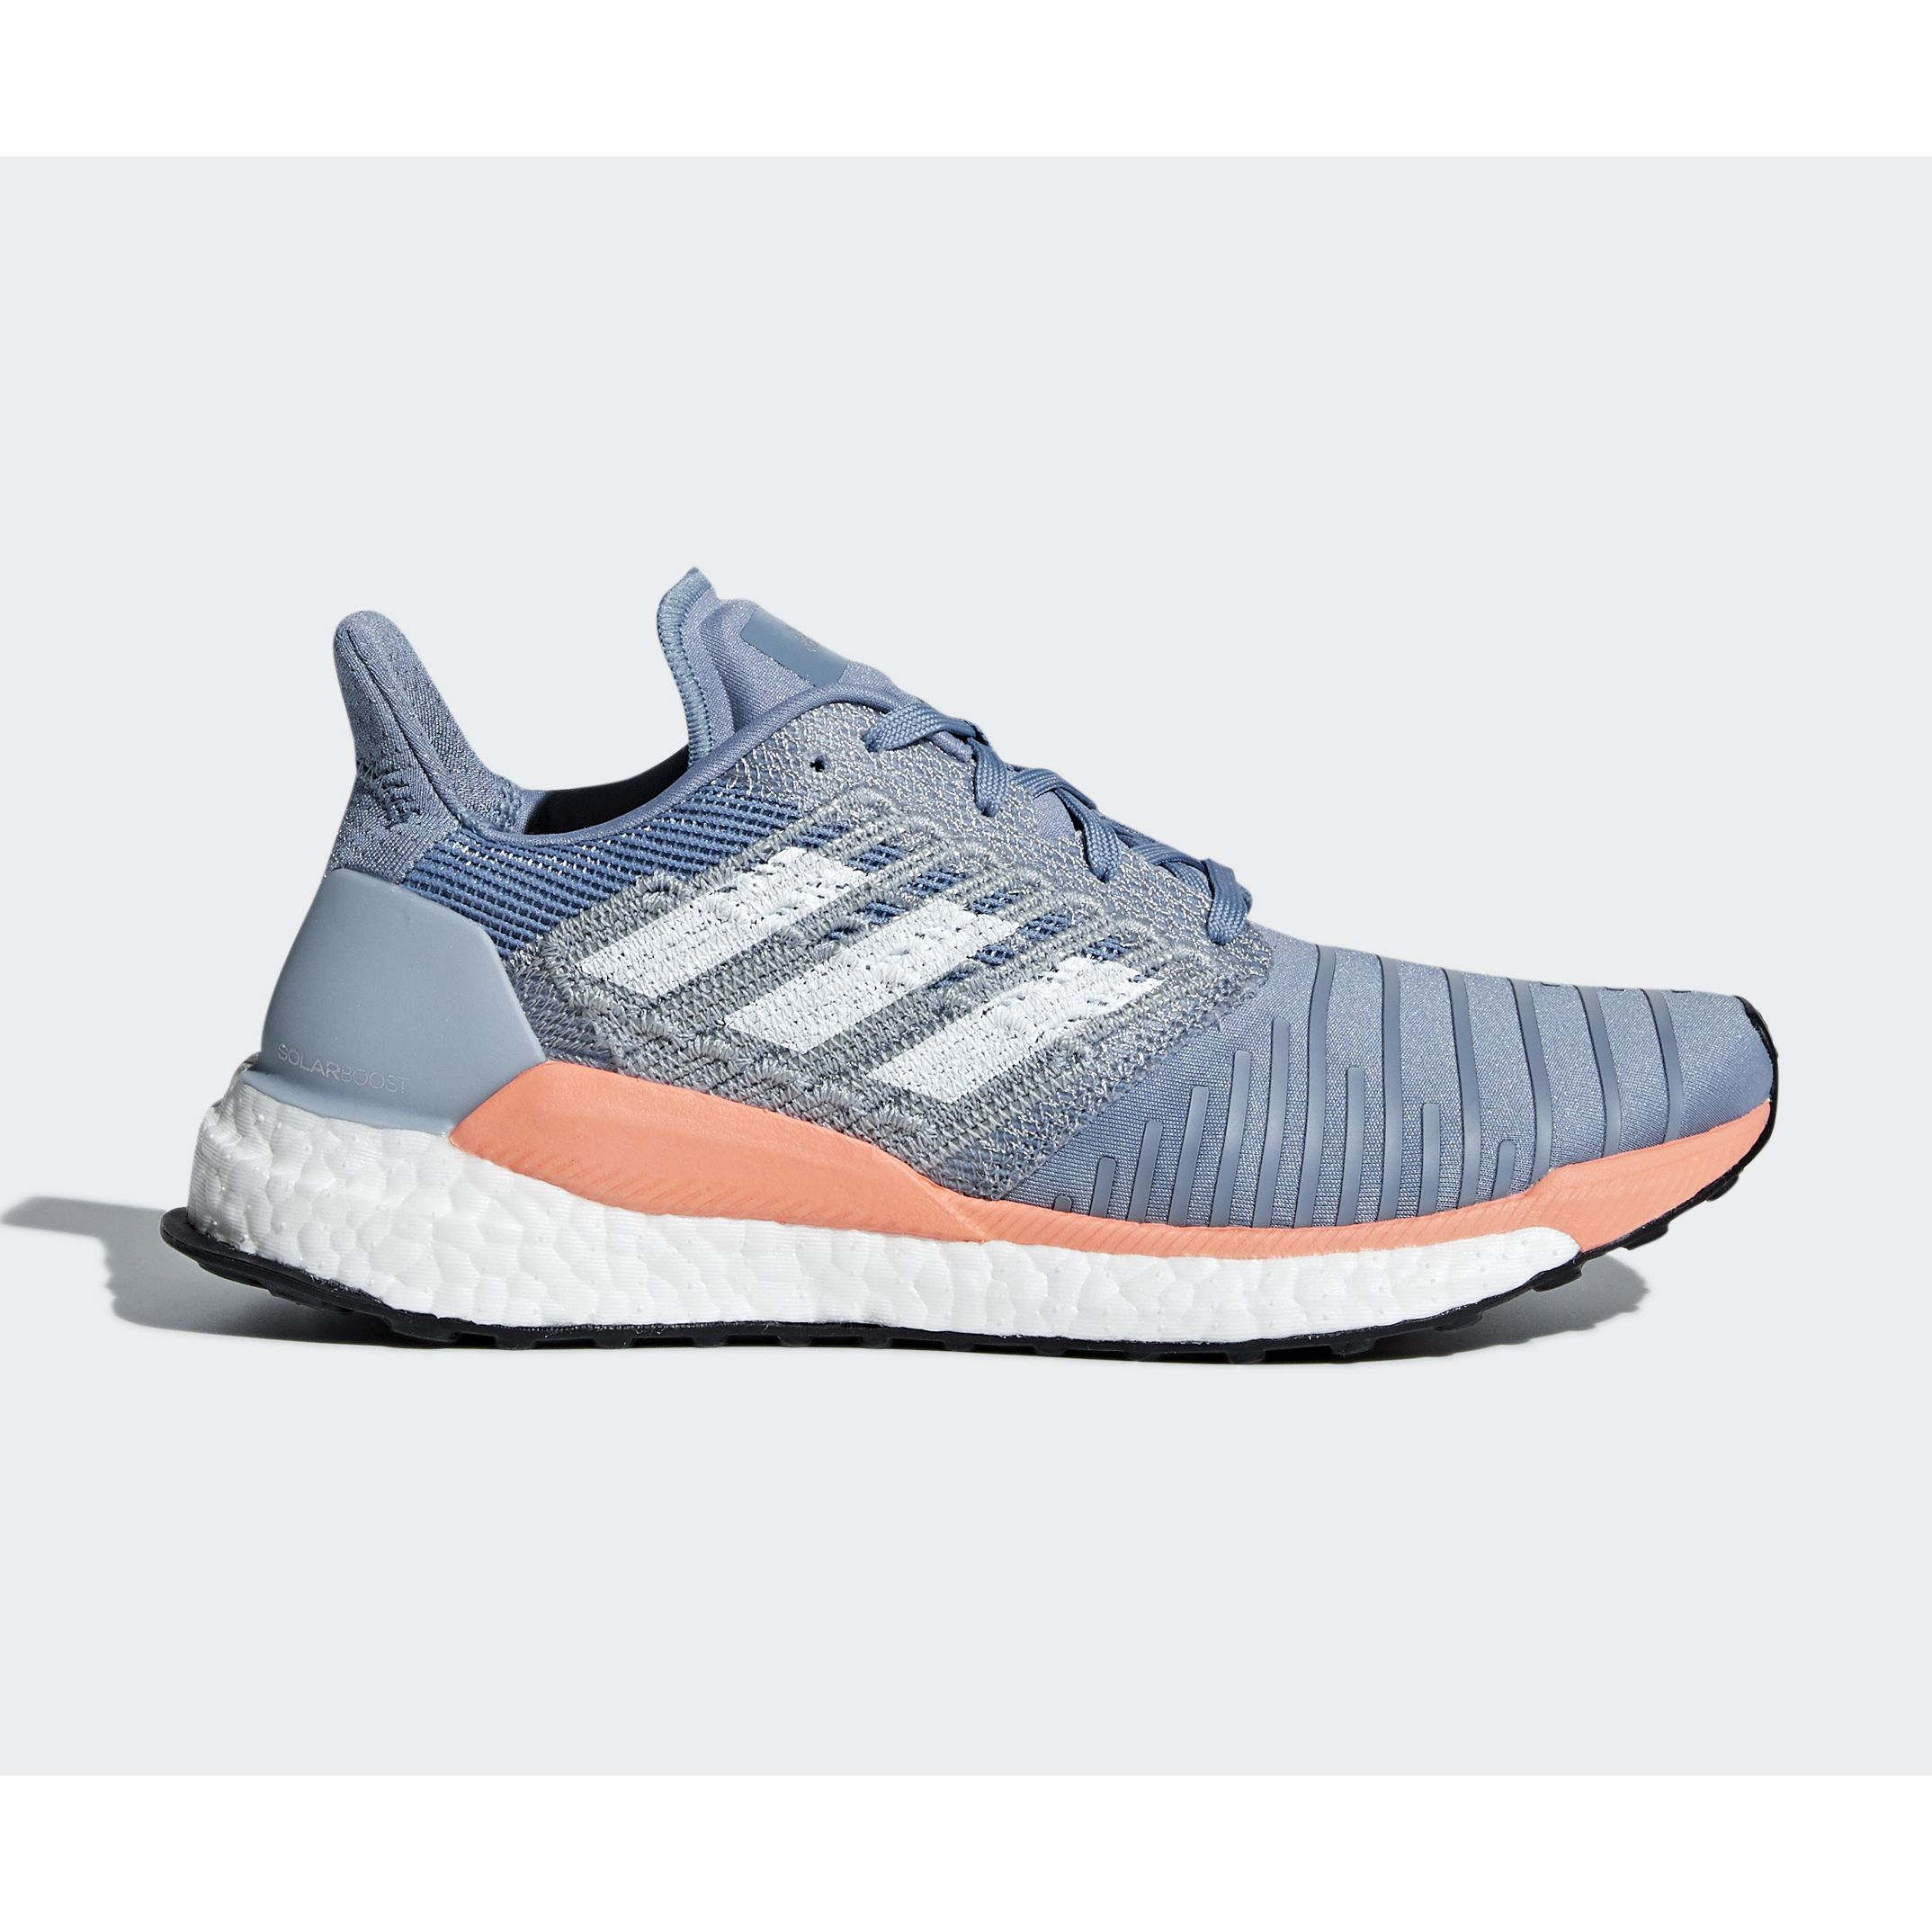 Adidas Solar Boost Shoes Trainers